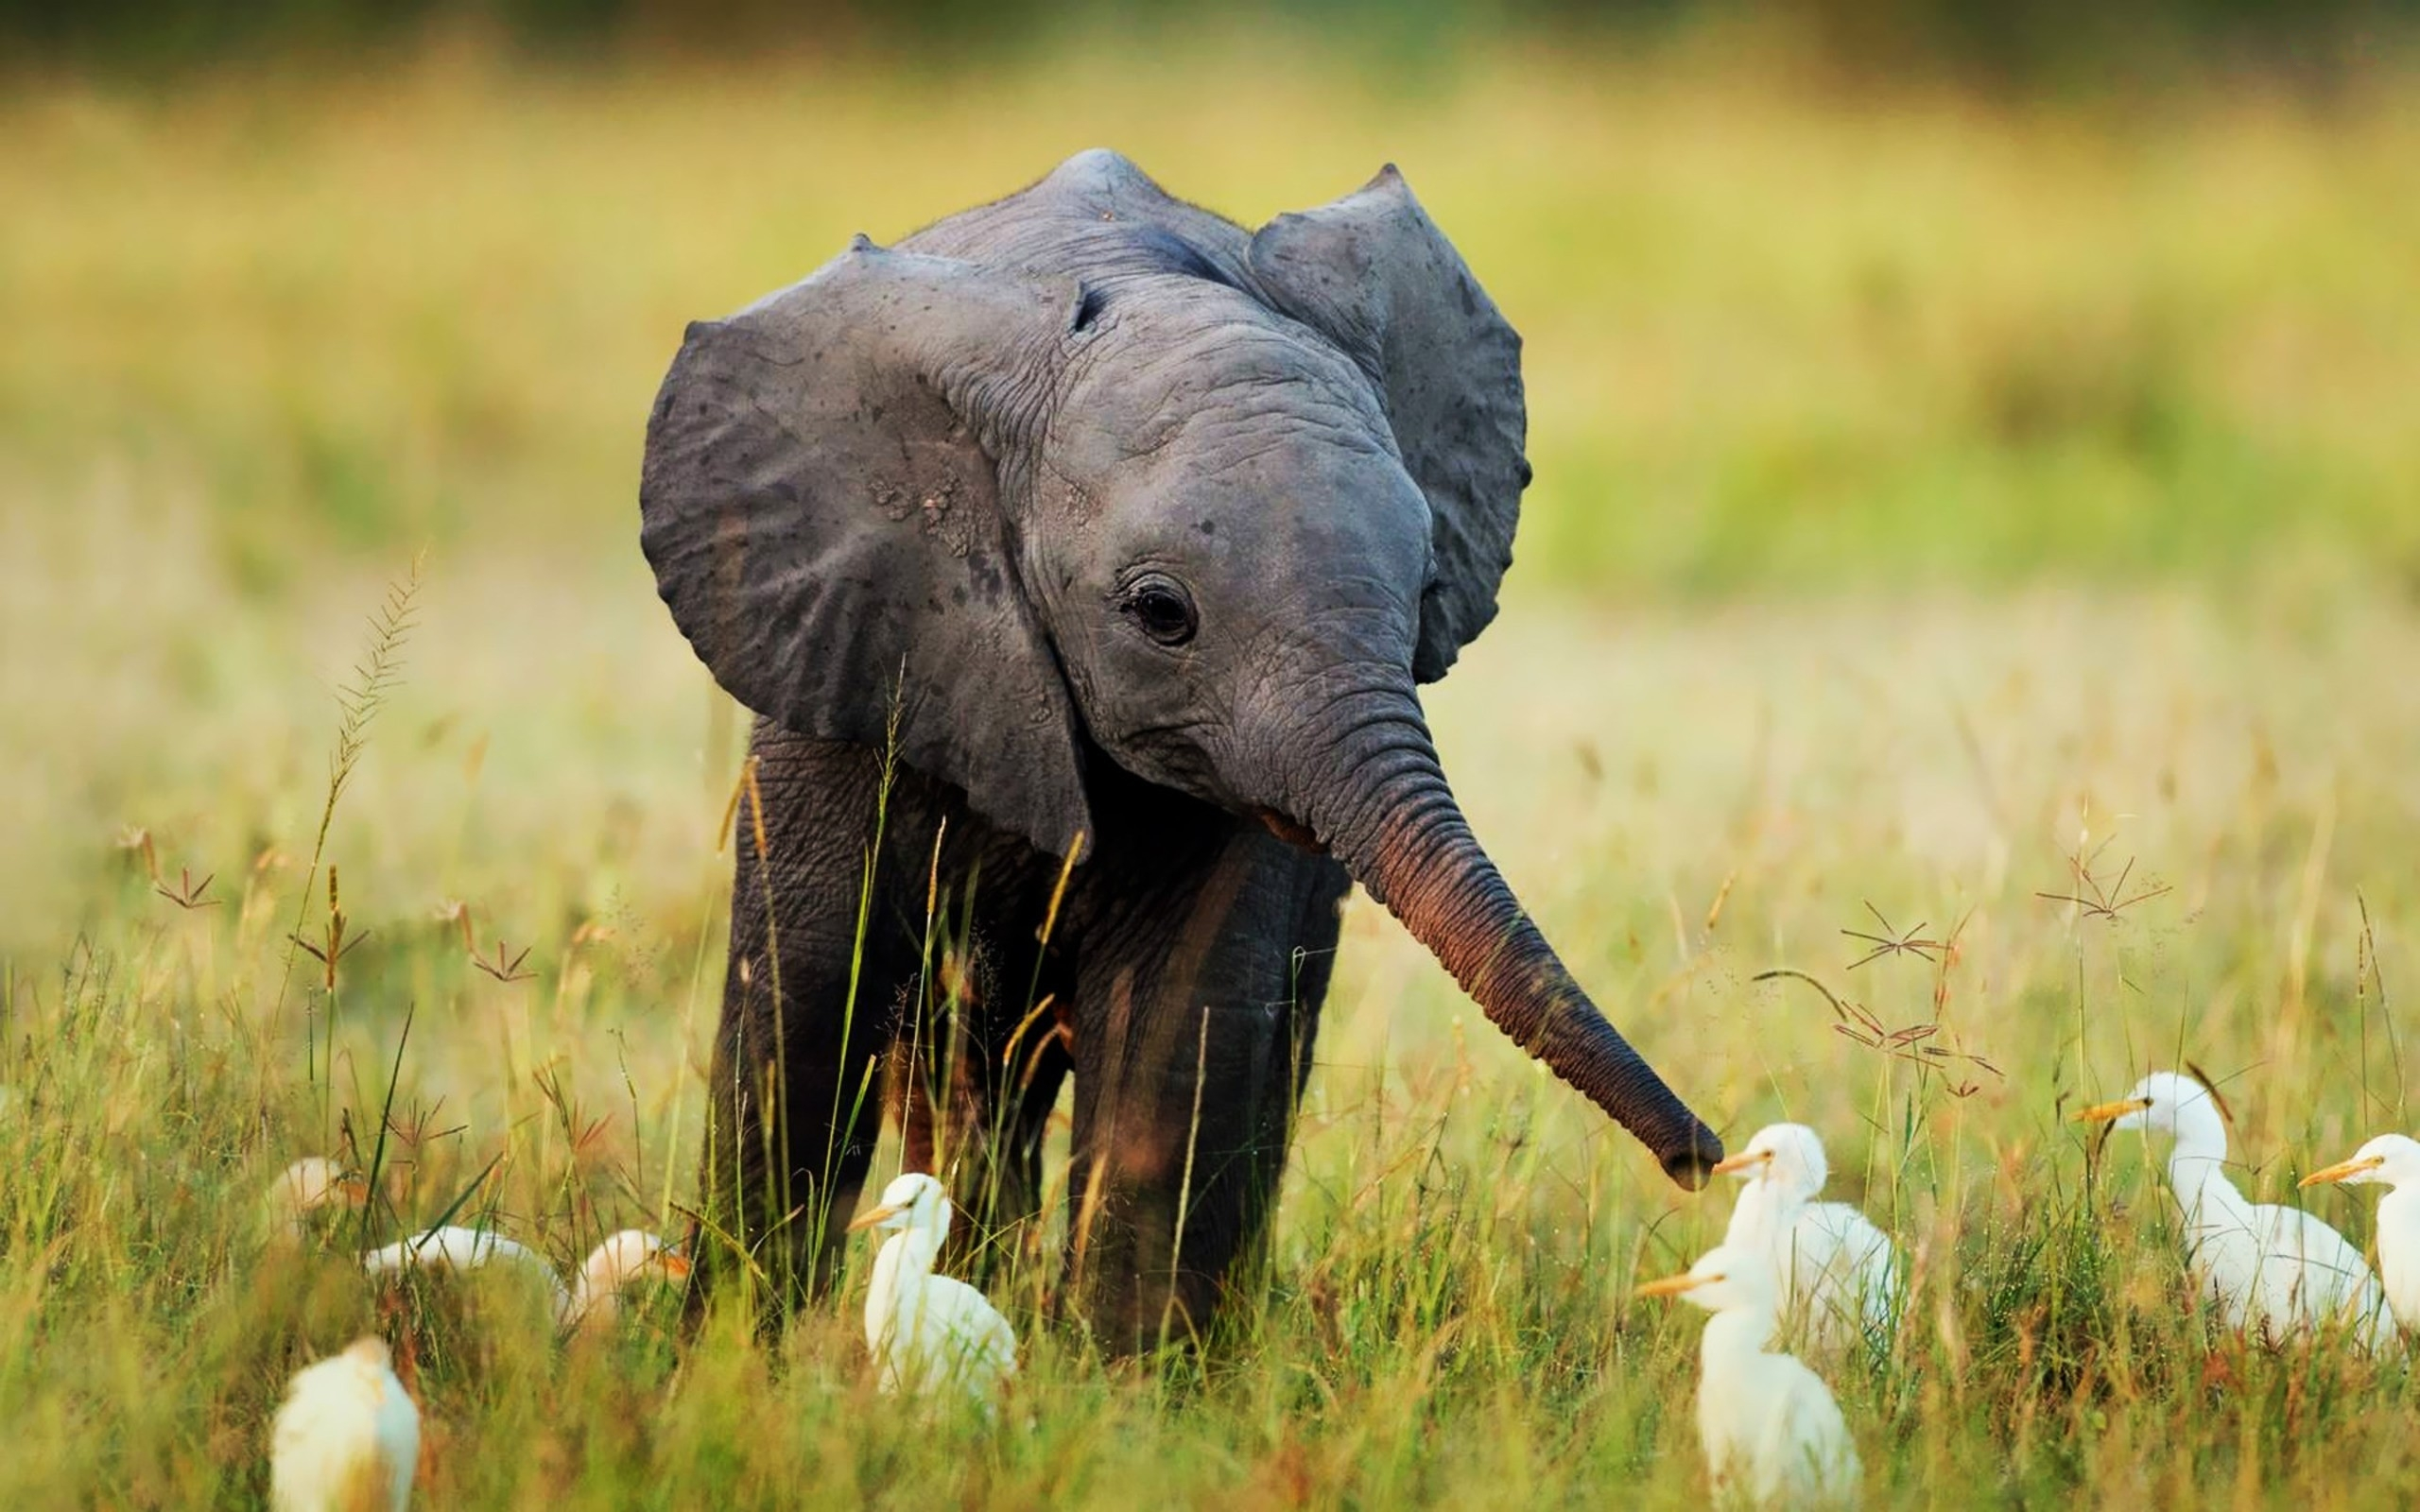 8k Animal Wallpaper Download: Elephant Wallpapers, Photos And Desktop Backgrounds Up To